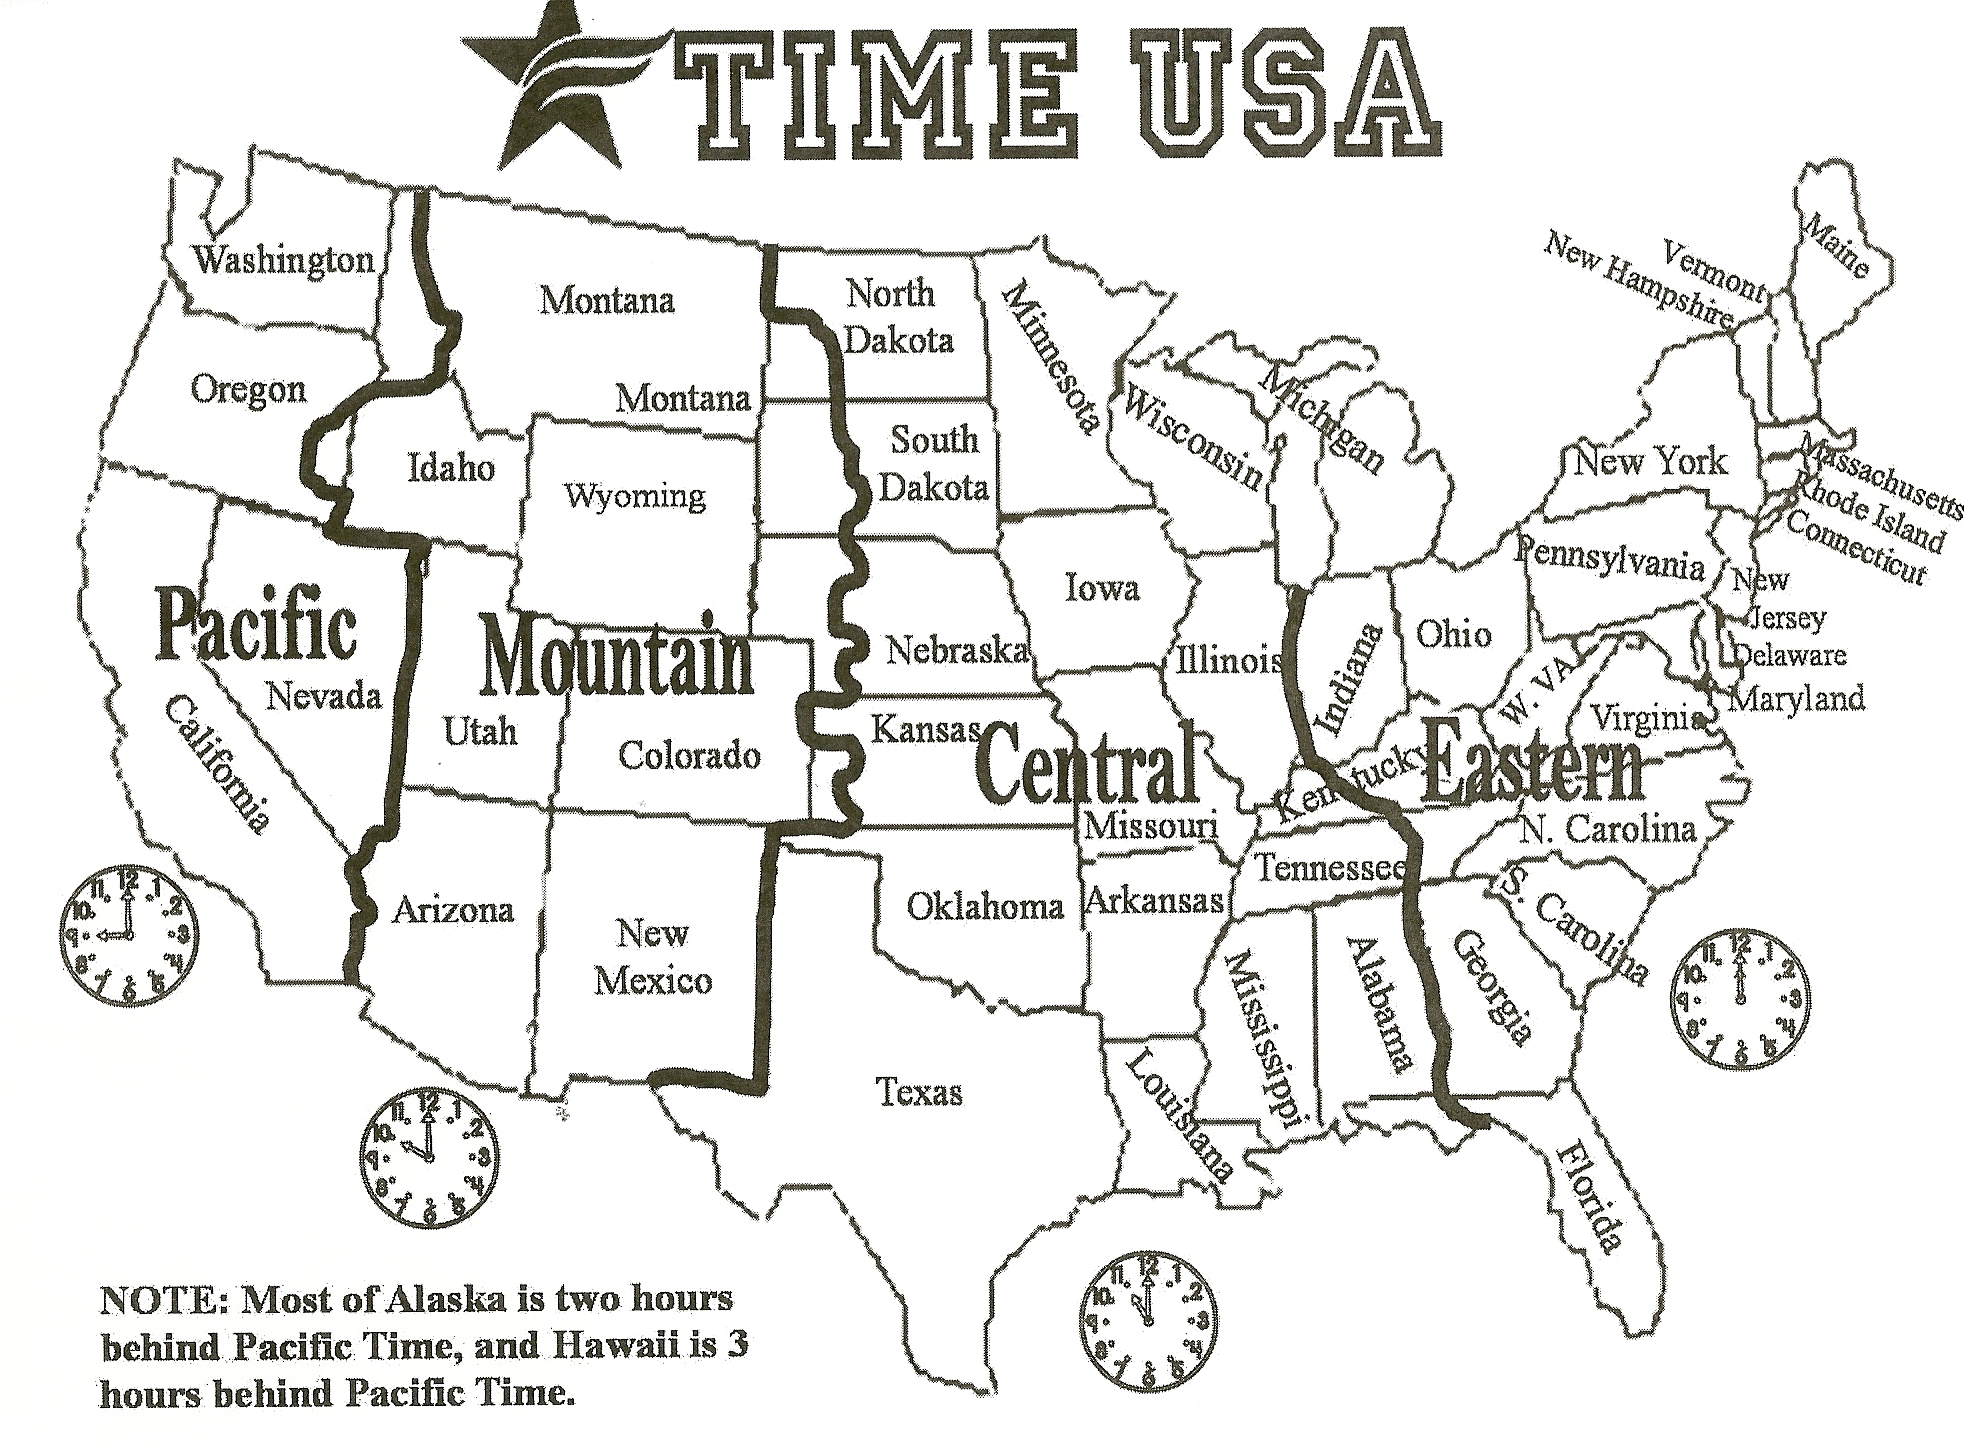 Us Area Code Time Zone - 770 us area code time zone